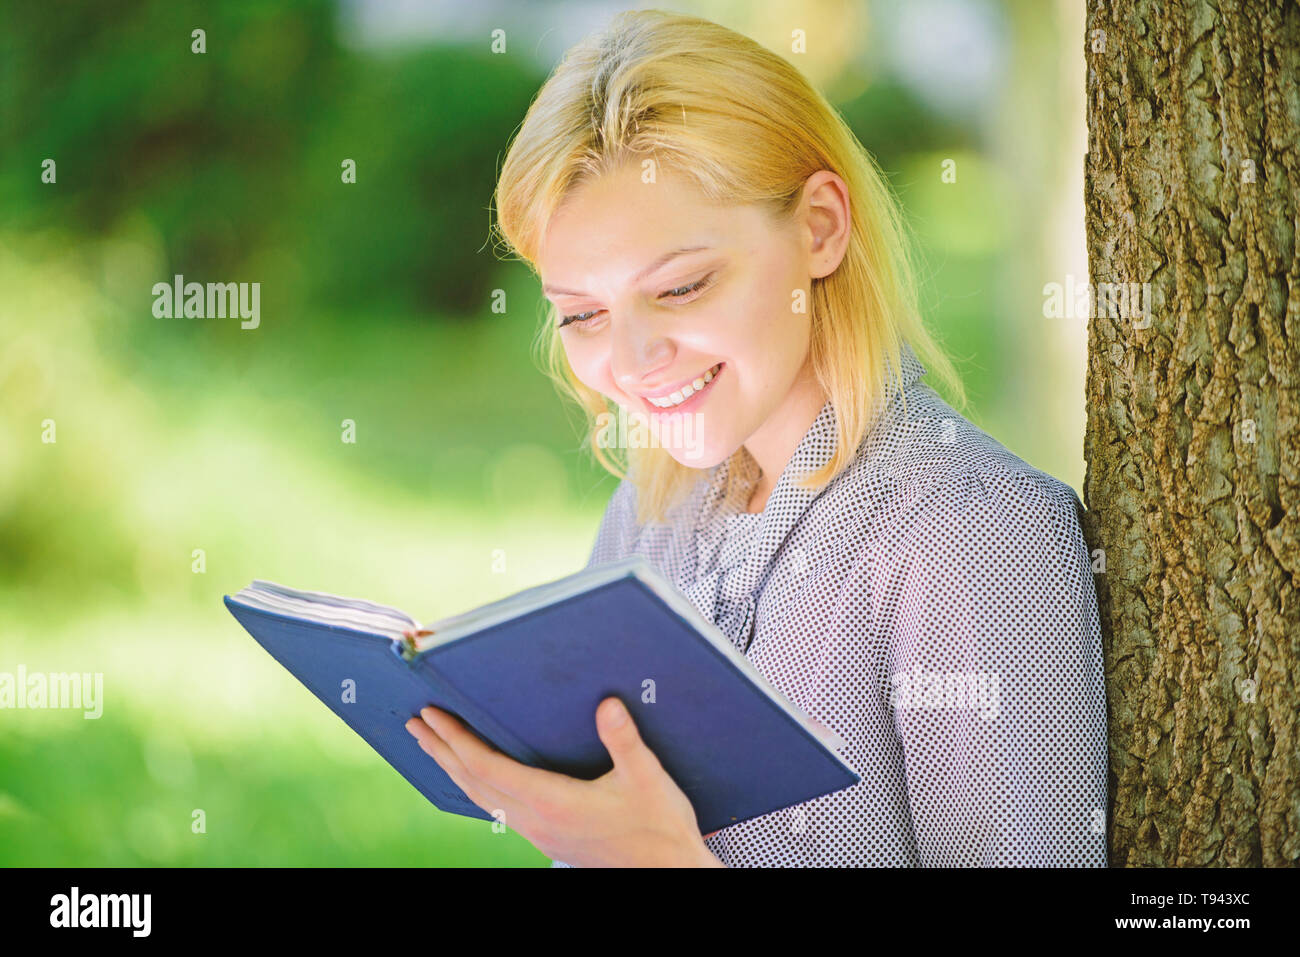 Girl Interested Sit Park Read Book Nature Background